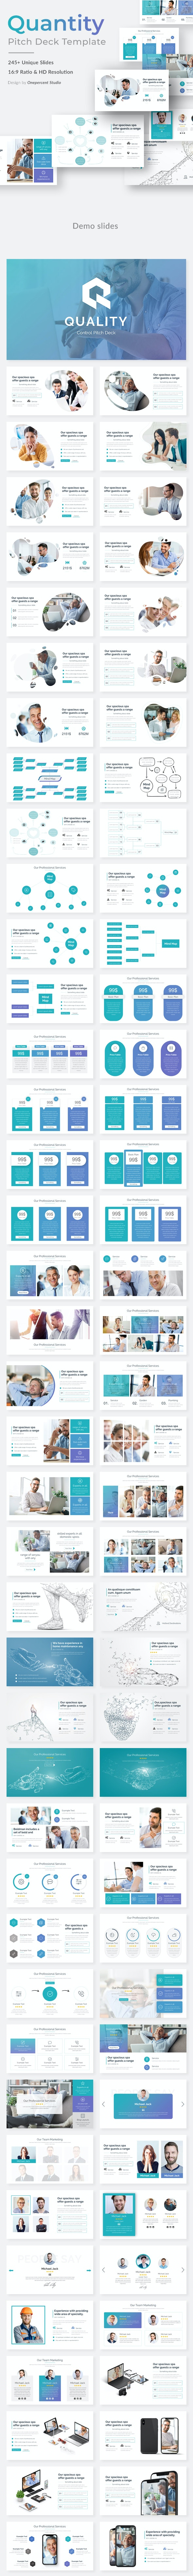 Quality Control Pitch Deck Powerpoint Template - Business PowerPoint Templates